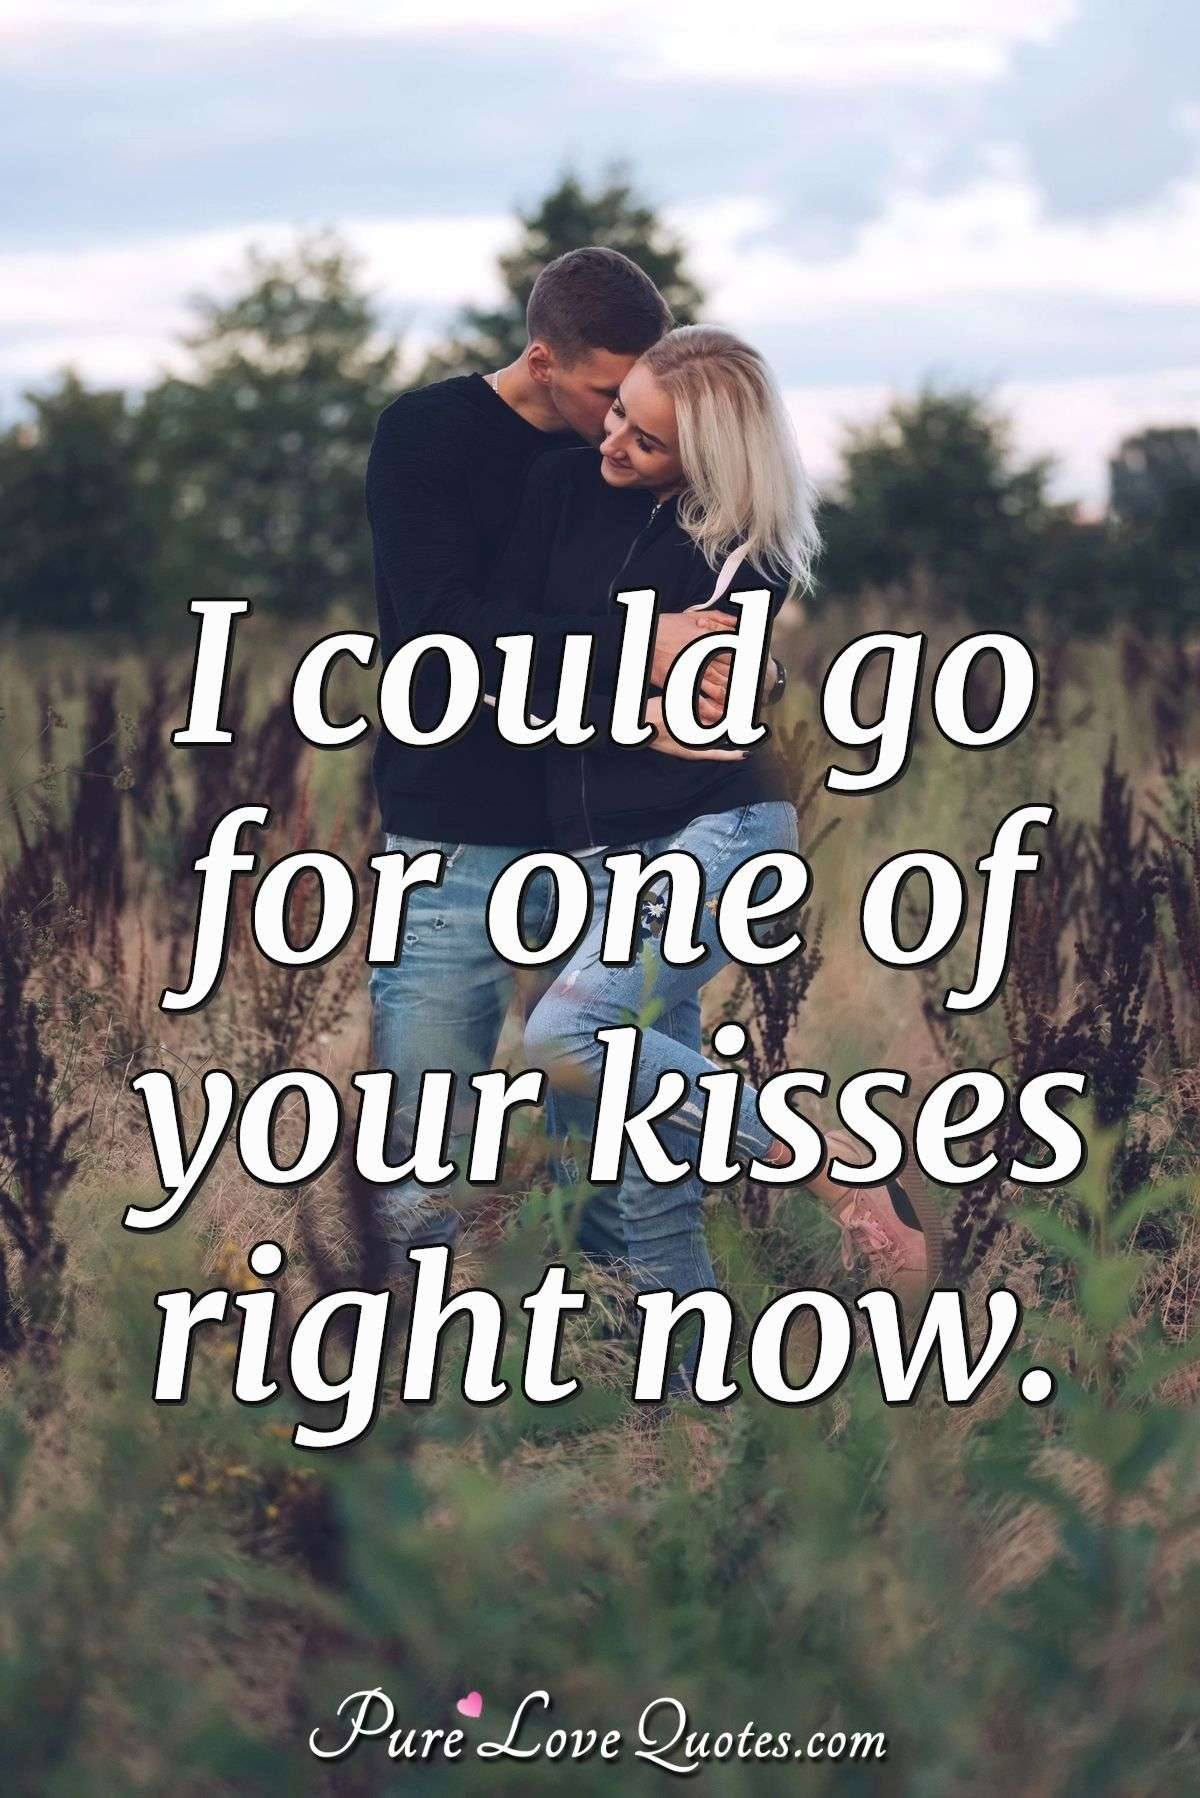 I could go for one of your kisses right now. - Anonymous